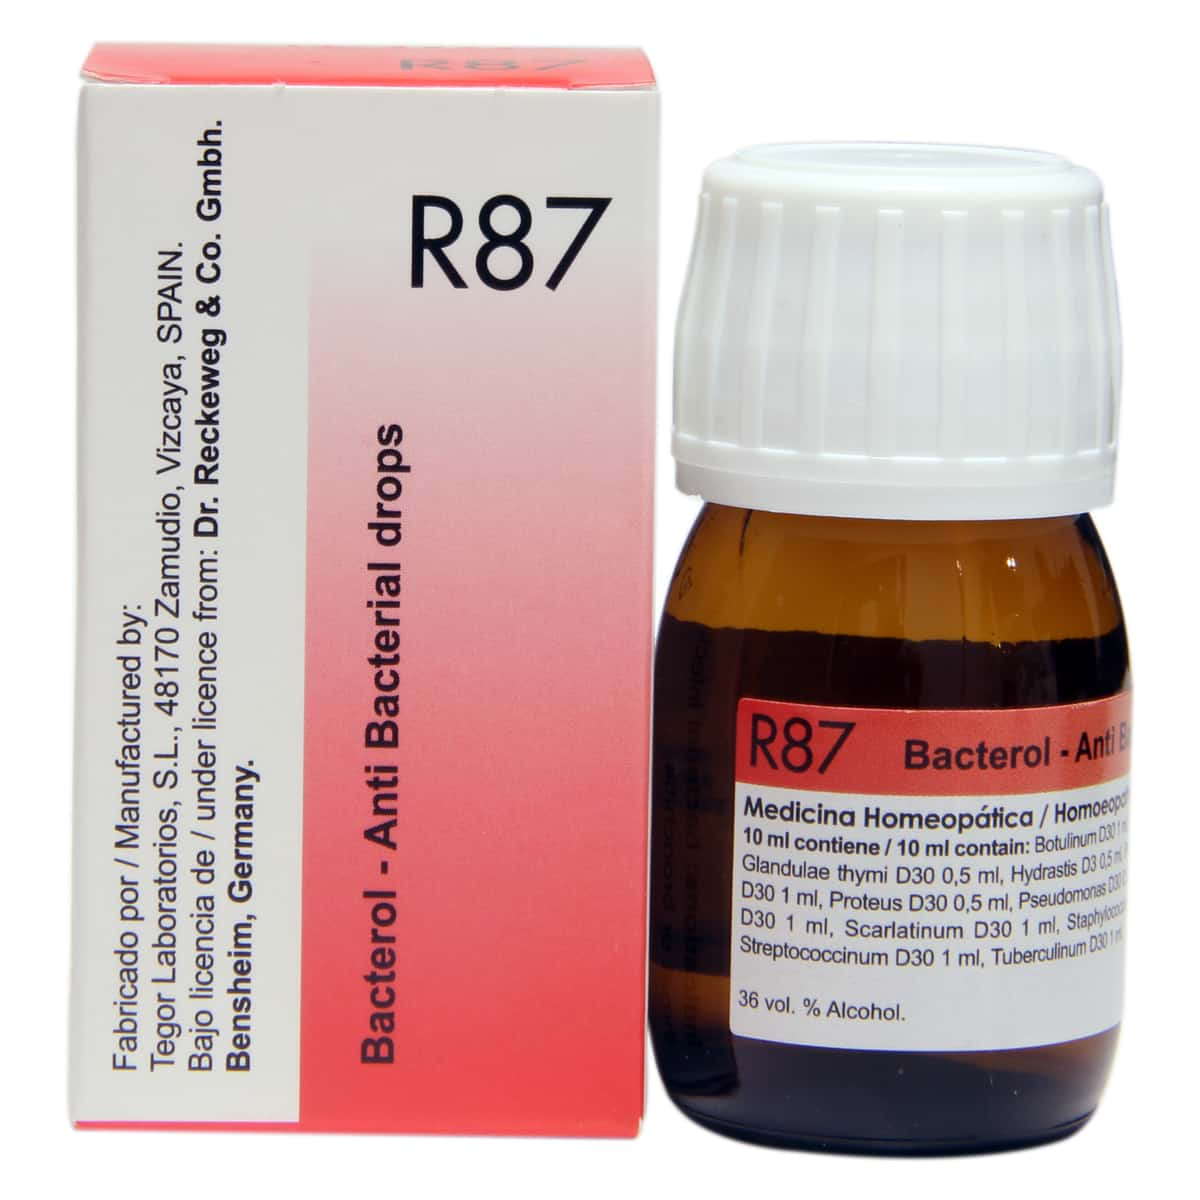 R87-Homeopathicology.com